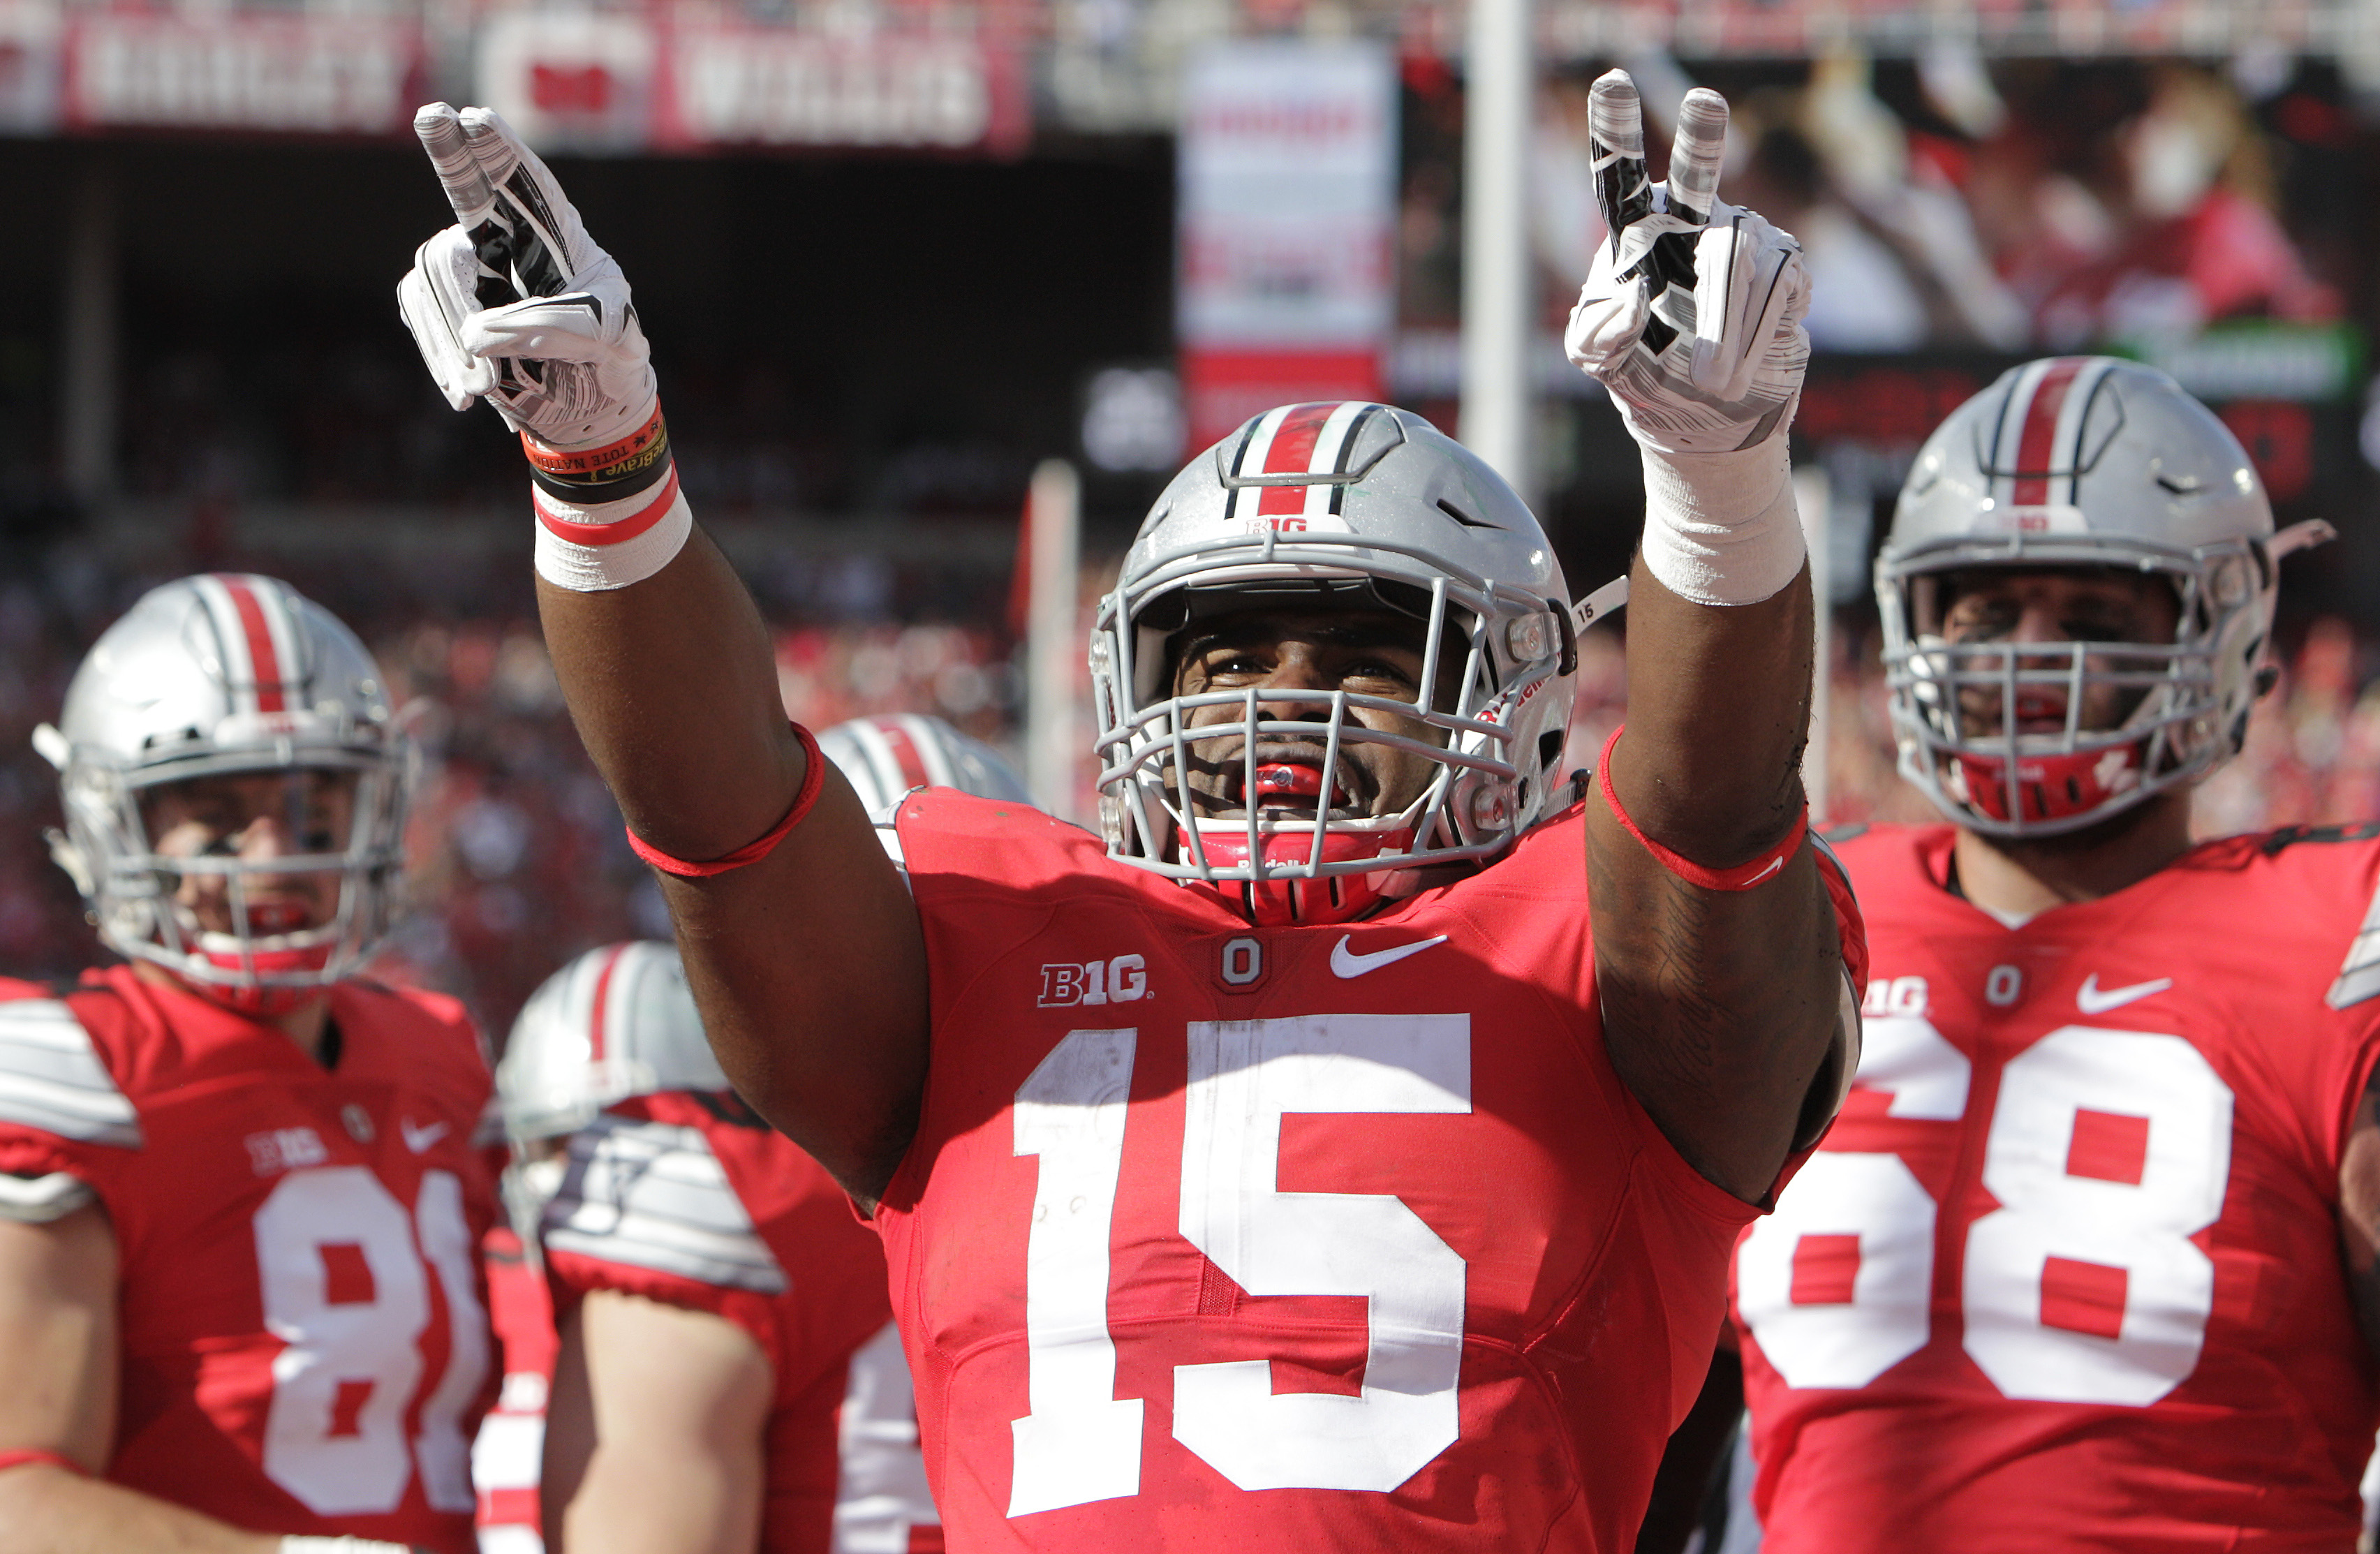 Ohio State running back Ezekiel Elliott celebrates his touchdown against Hawaii during the second quarter of an NCAA college football game Saturday, Sept. 12, 2015, in Columbus, Ohio. (AP Photo/Jay LaPrete)